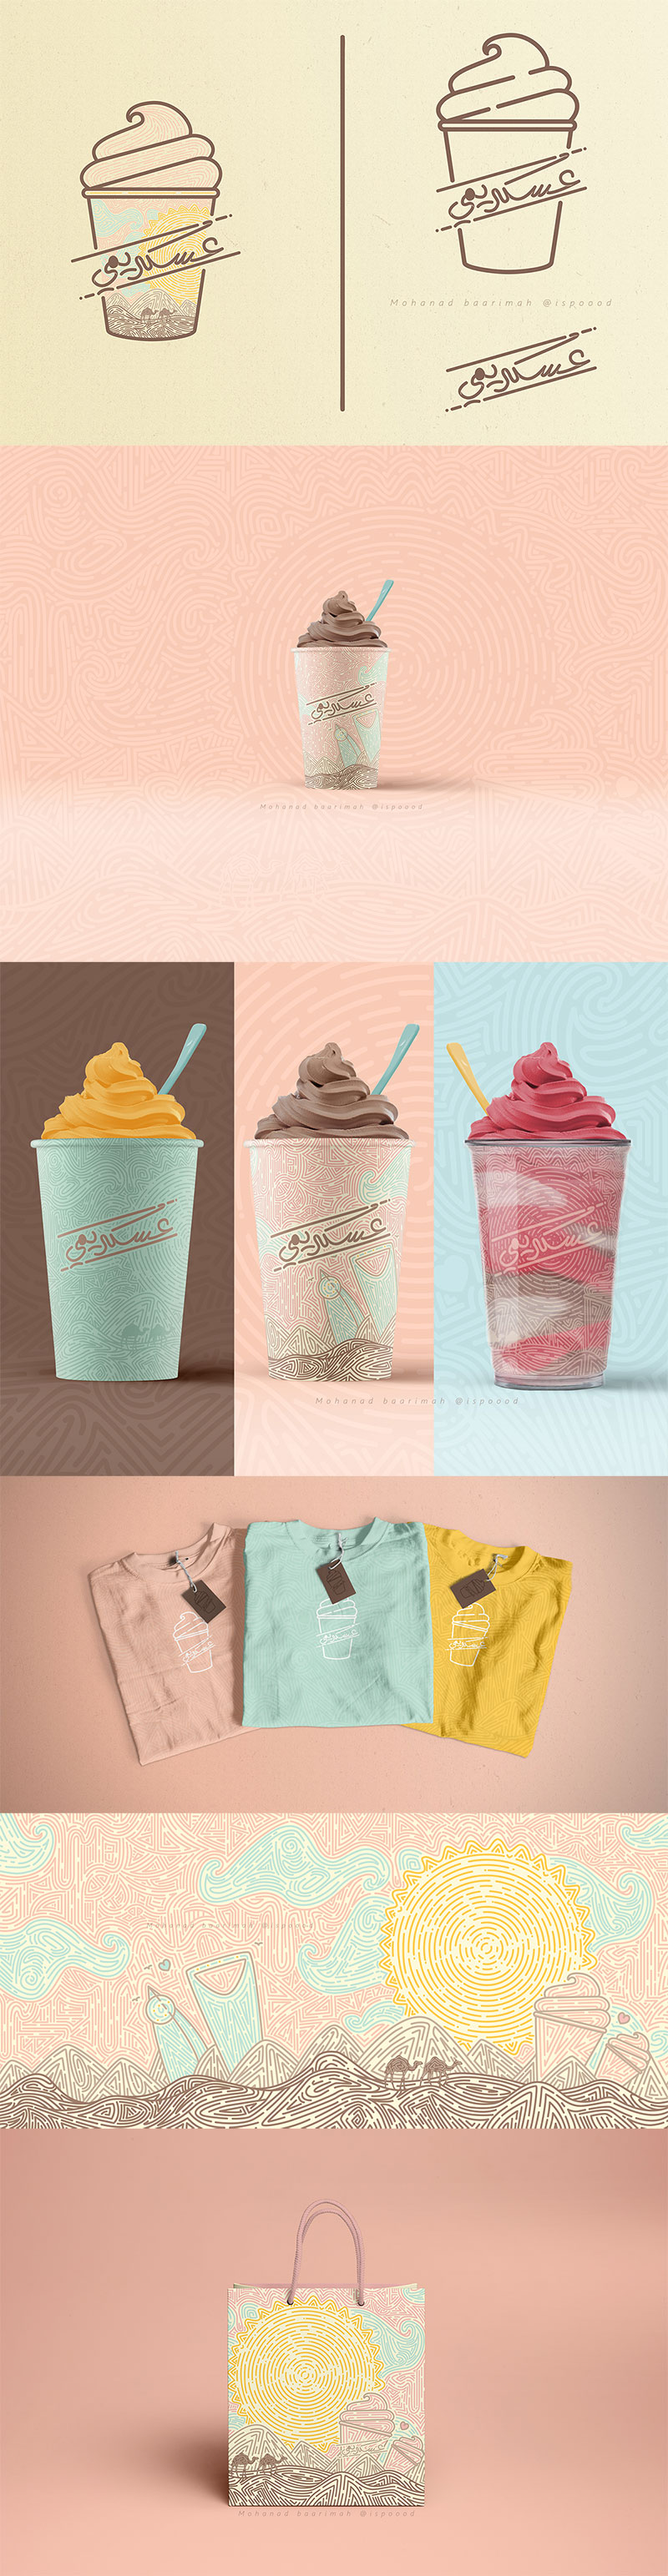 Ice Cream Packaging - Icecreame by Mohanad Ba'arimah